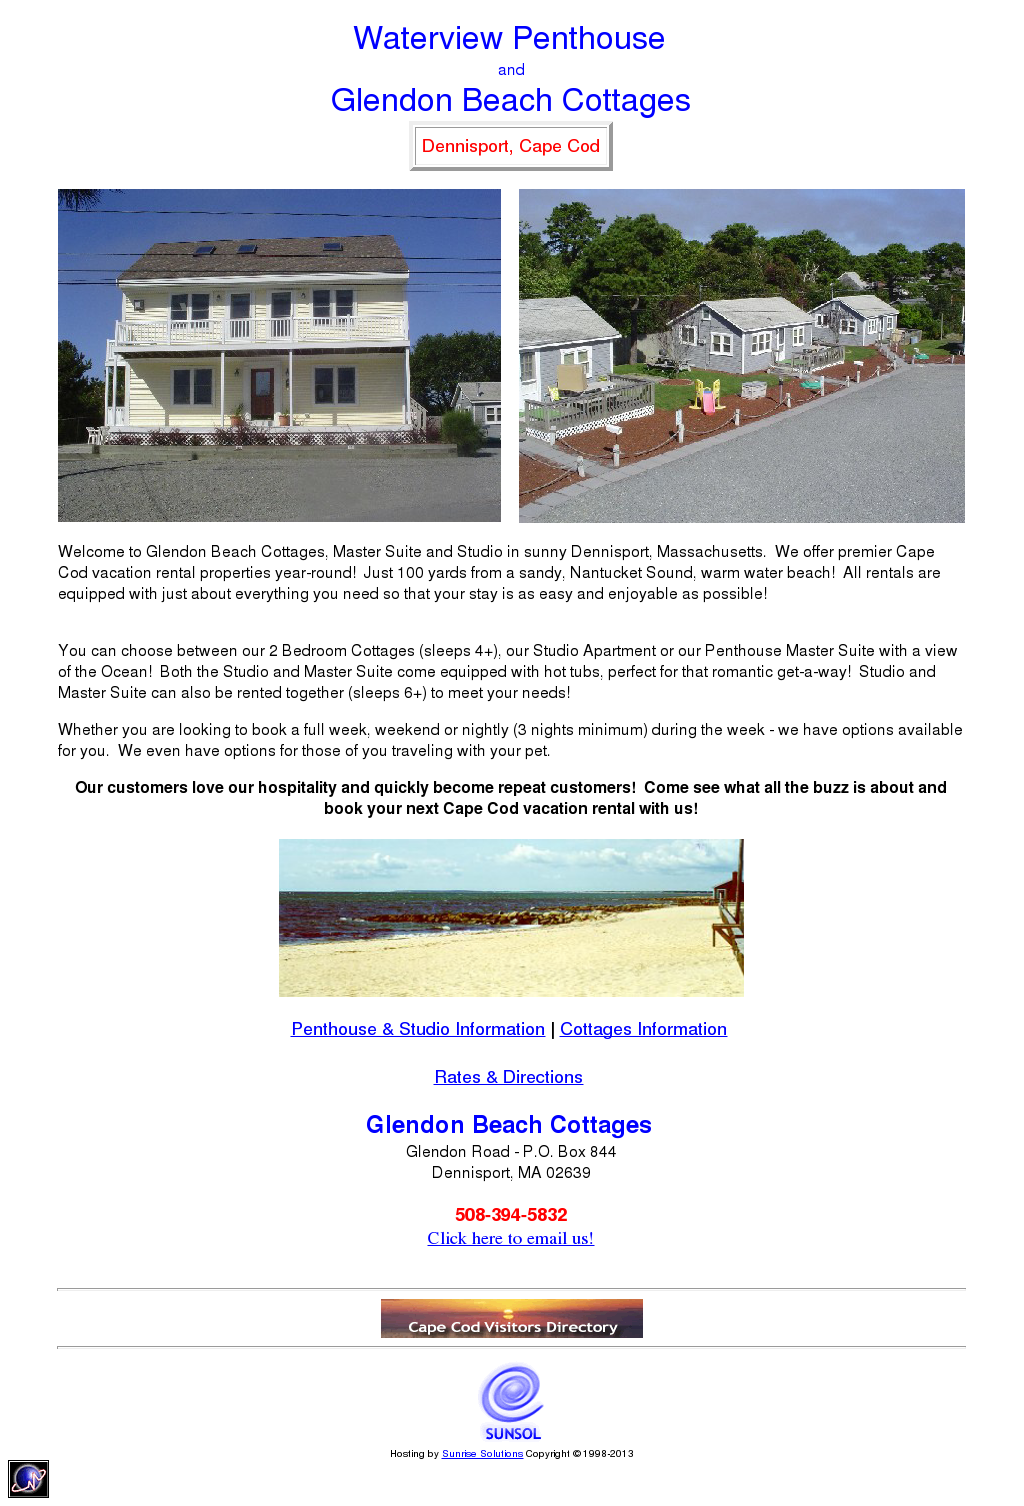 Glendon Beach Cottages Compeors Revenue And Employees Owler Company Profile